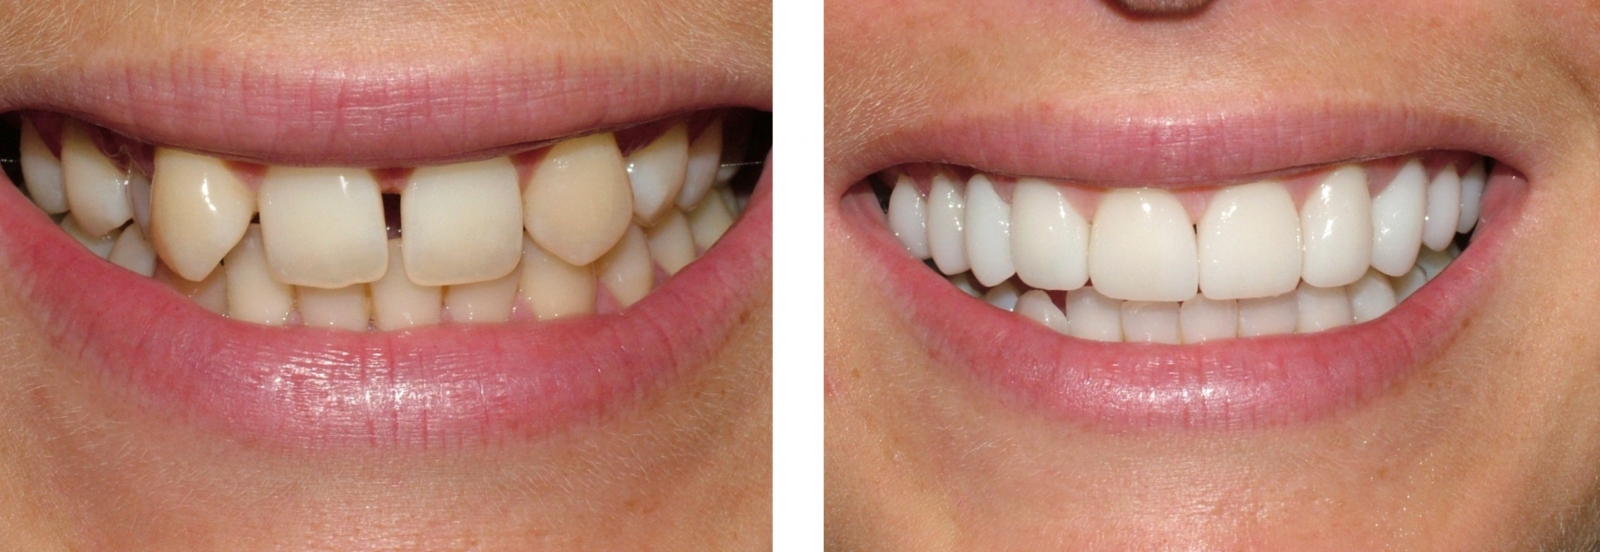 Smile Makeover- Veneers